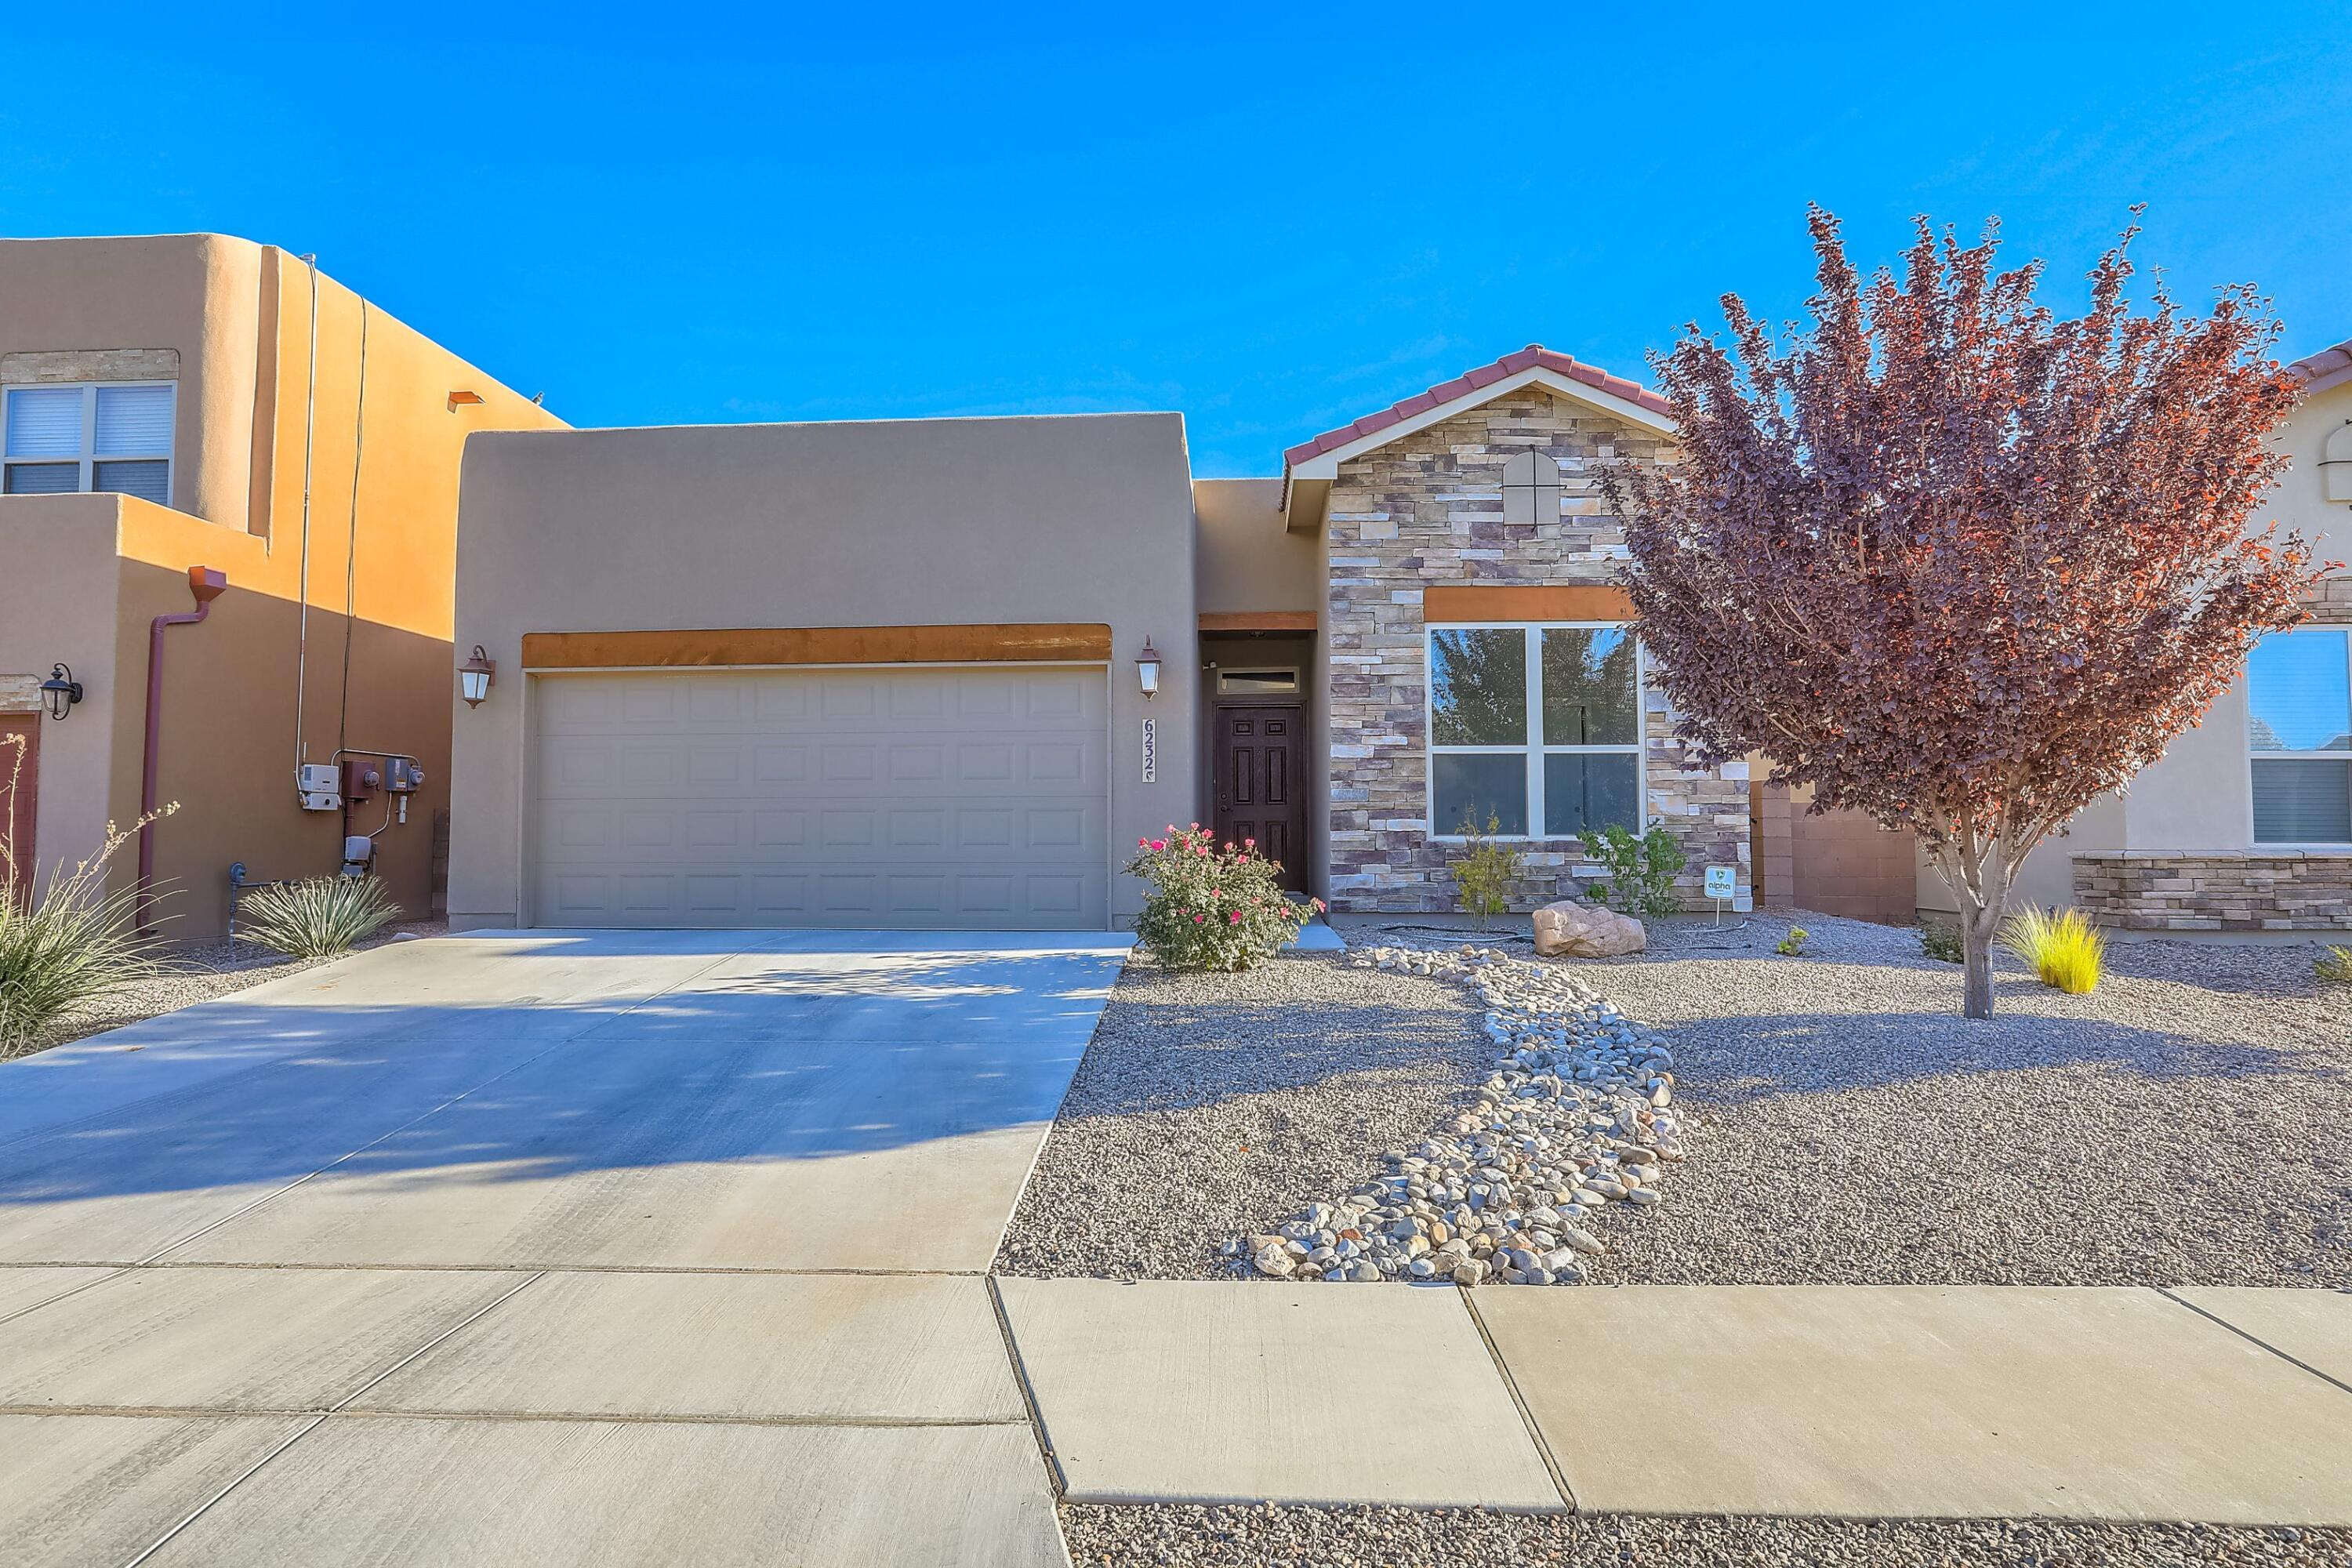 Beautifully finished one story, refrigerated air home with fully landscaped yard. Large, open entertaining kitchen to great room with high ceilings and gas log fireplace. Home has 4 bedrooms-one making a great office for working at home. New upgraded luxury vinyl flooring in home. Newer paint. Fruit trees-plum and nectarine planted strategically to provide the right shade. Raised back wall. Tankless hot water heater. Oversized 2 car garage with great storage. Owned solar panels 2019. Save on PNM utilities.Don't miss this wonderful ONE STORY Home.